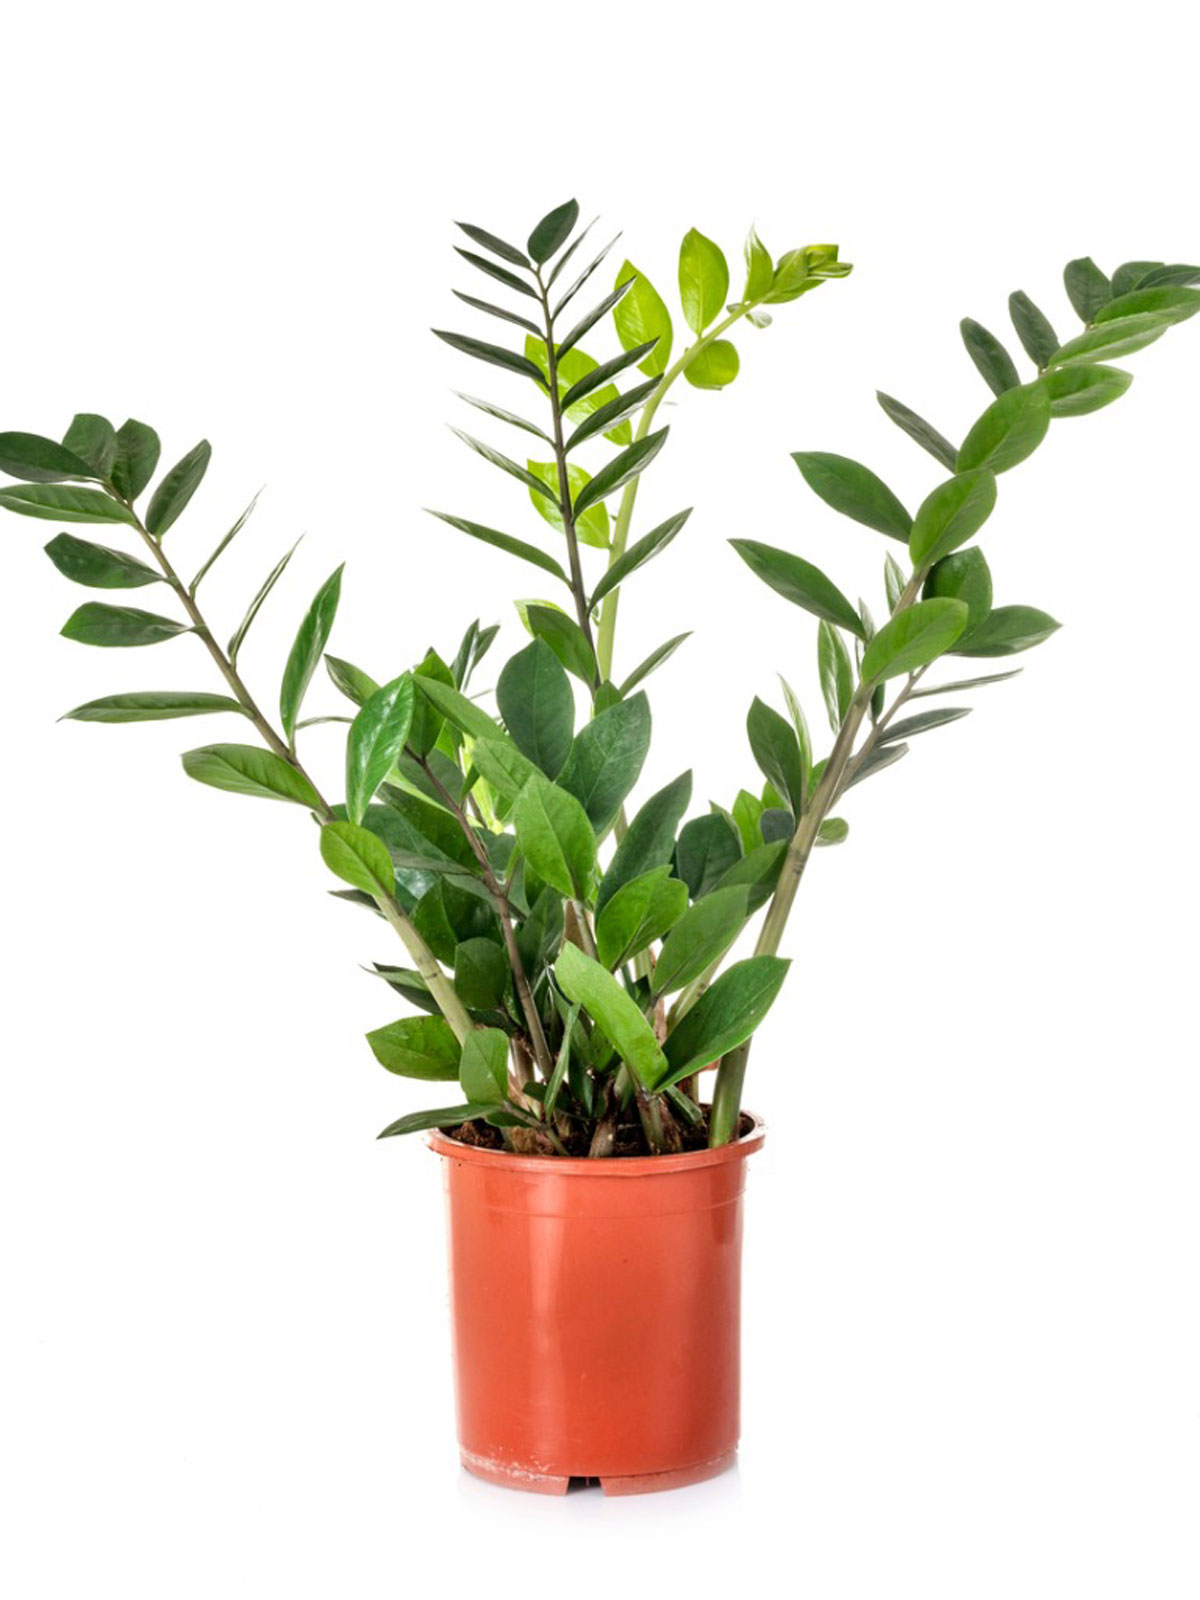 Zz Plant Leaf Propagation How To Root Zz Plant Cuttings